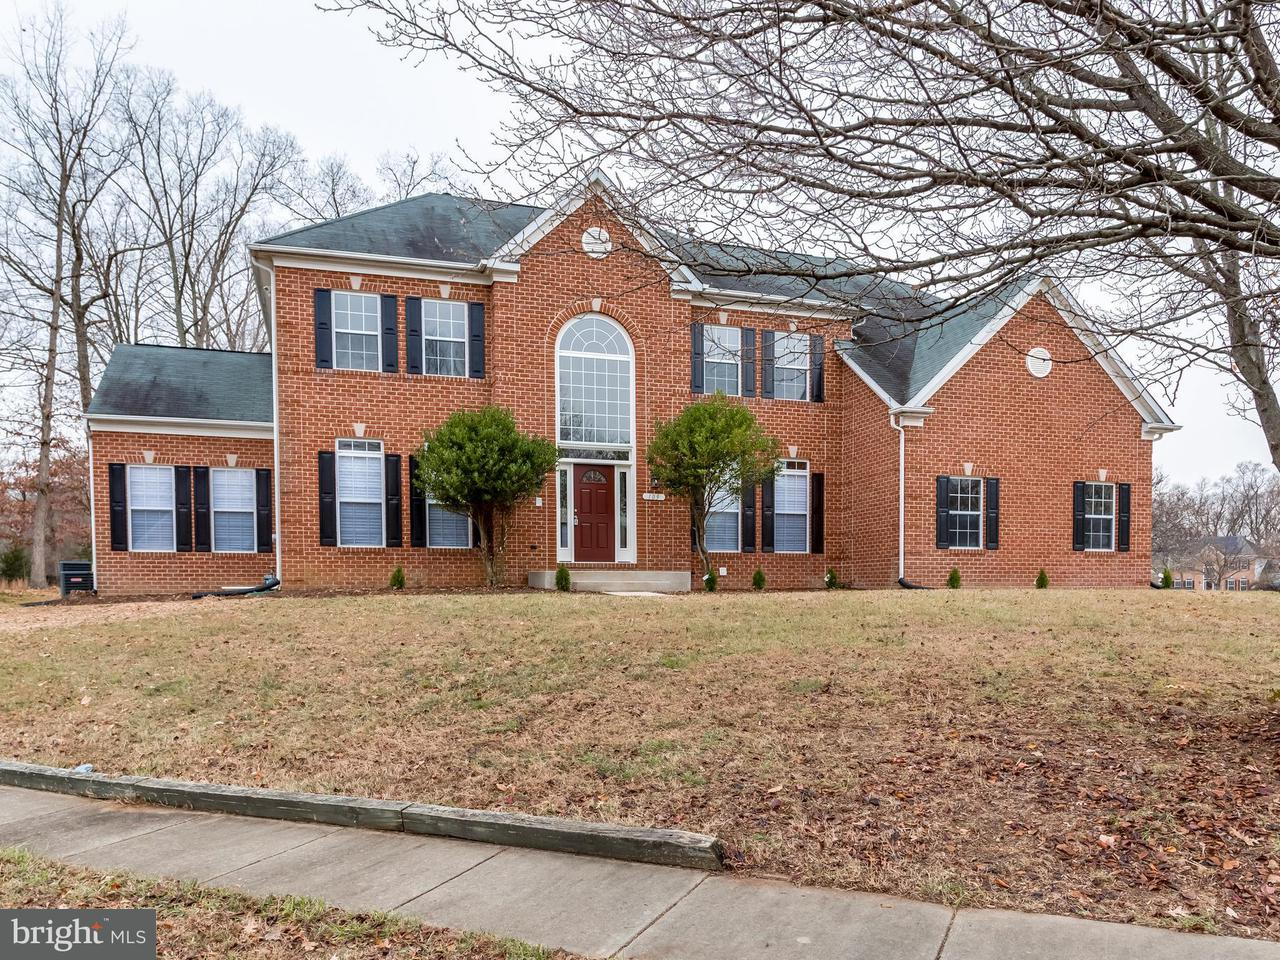 Single Family Home for Sale at 109 BRIGHTON KNOLL Court 109 BRIGHTON KNOLL Court Accokeek, Maryland 20607 United States